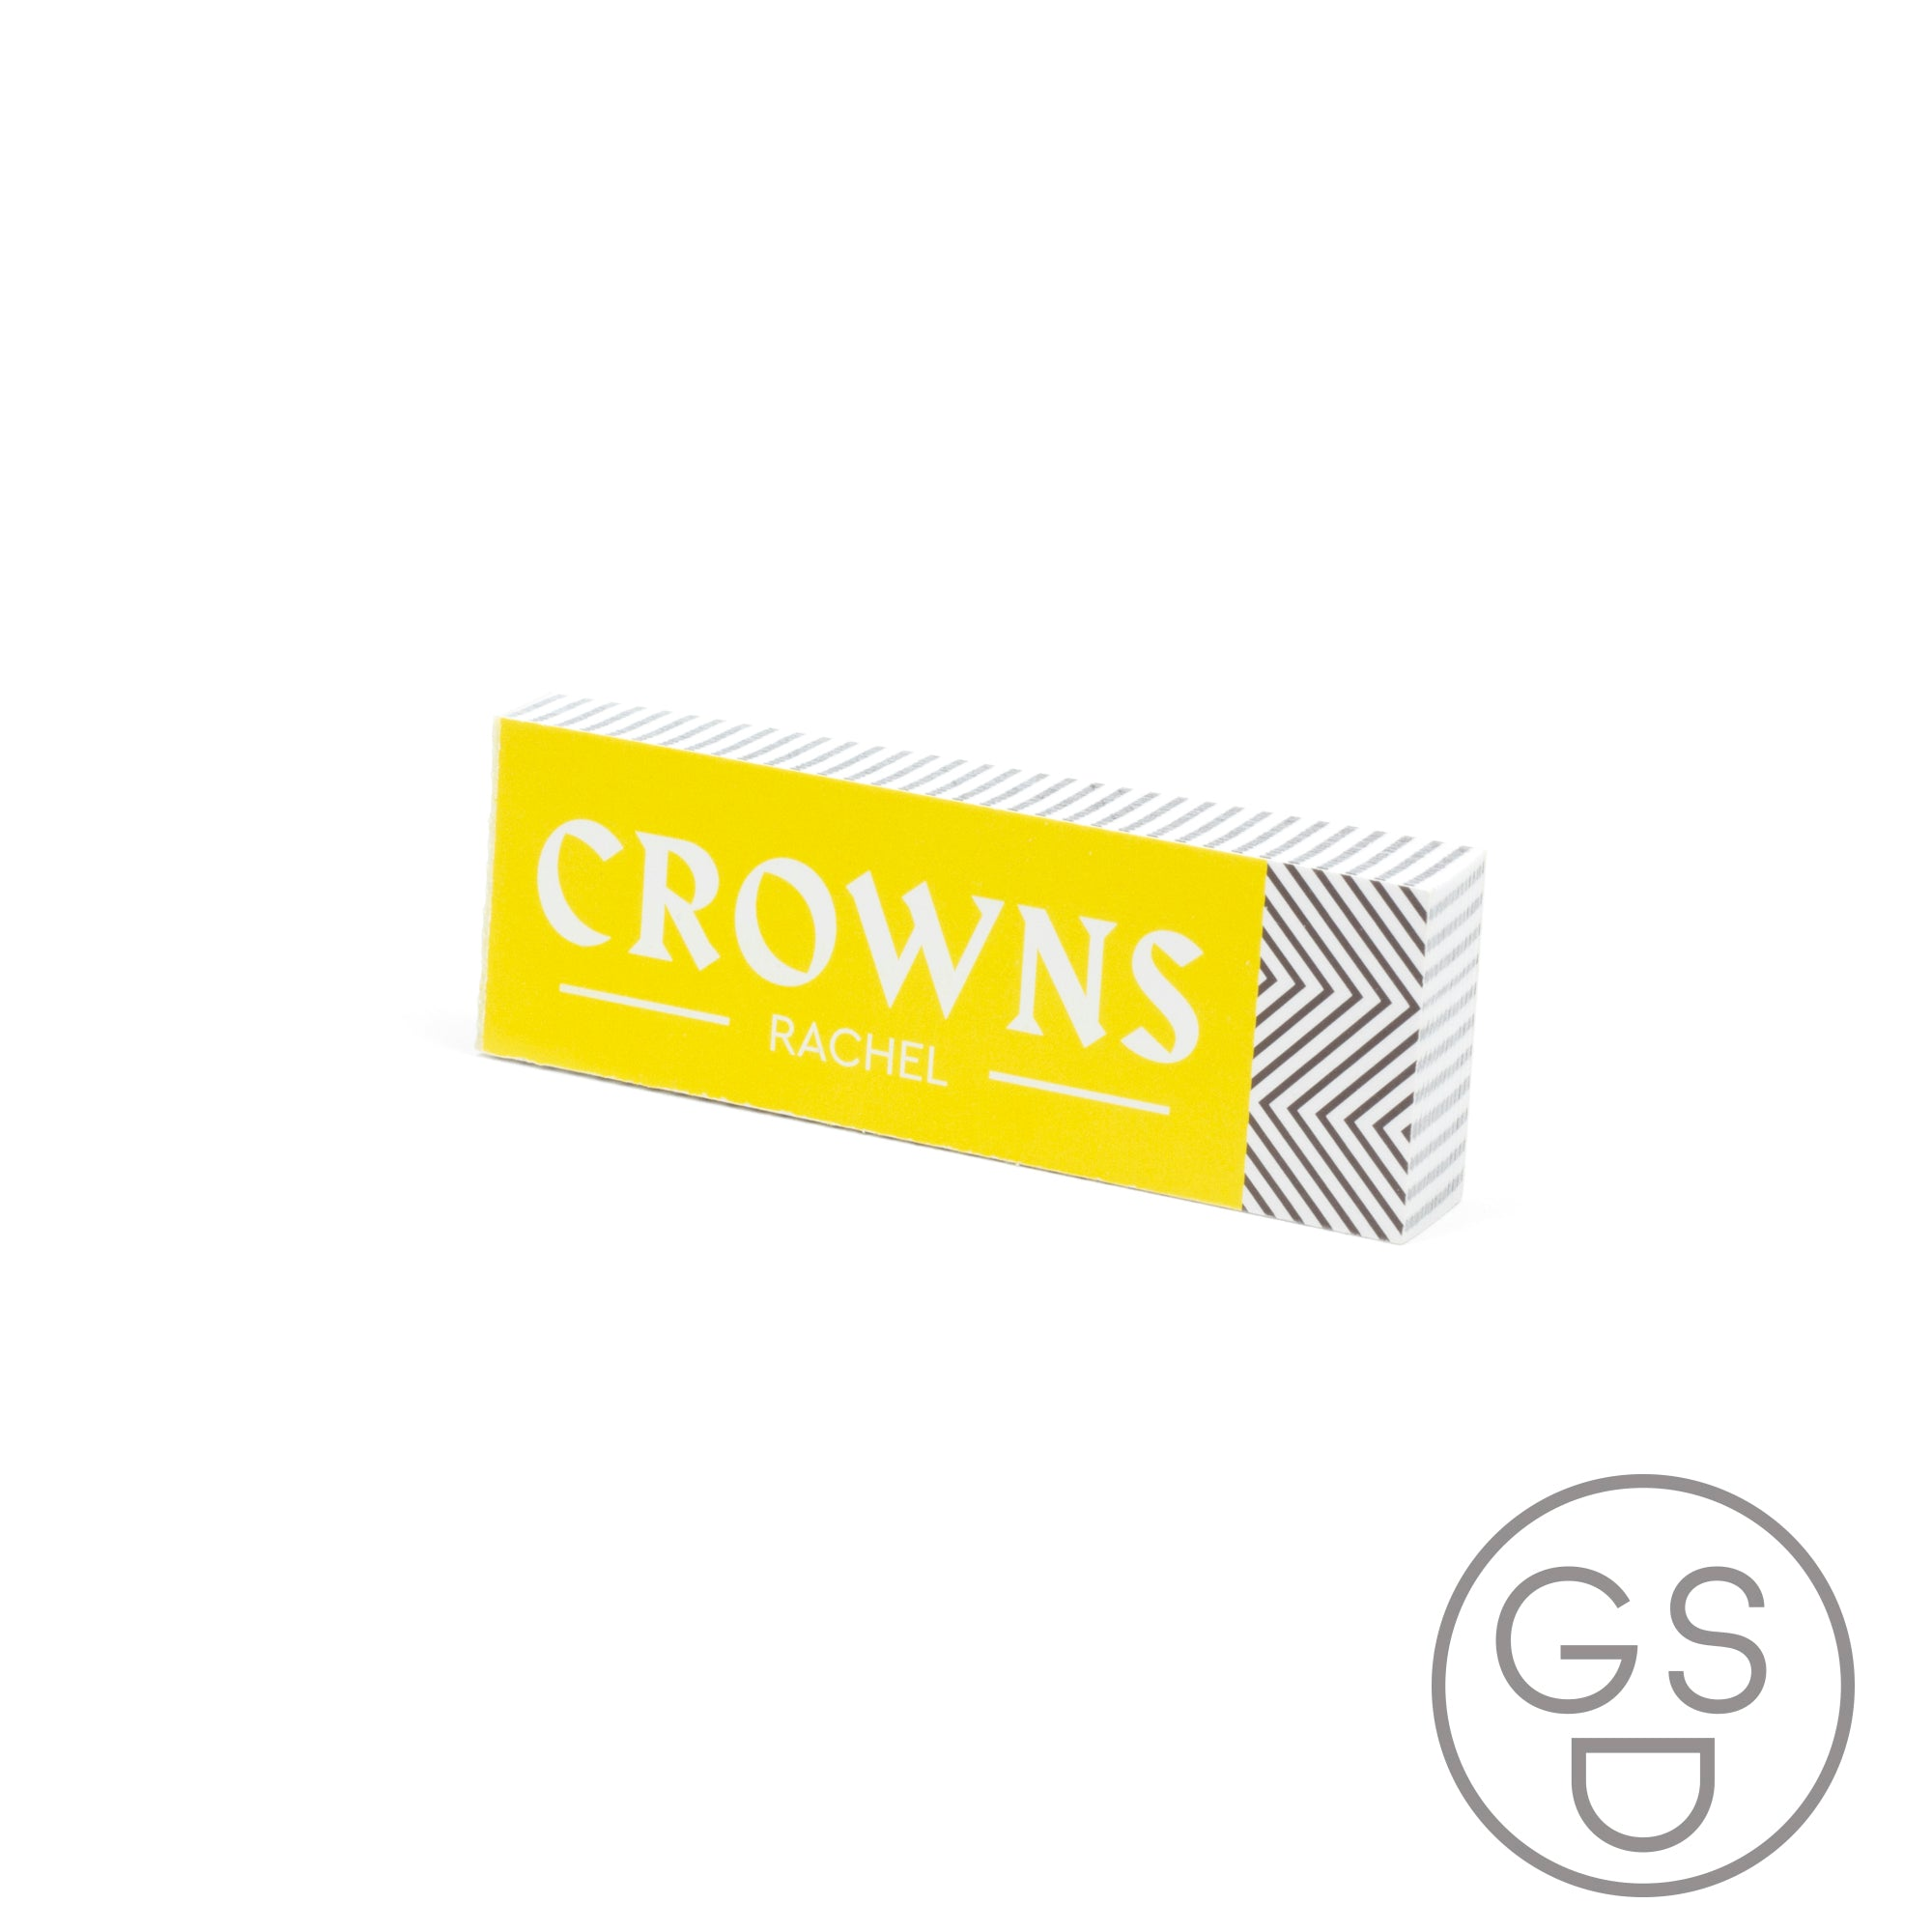 Eves Of Eden Crowns - Rolling Tips - 50 Crowns